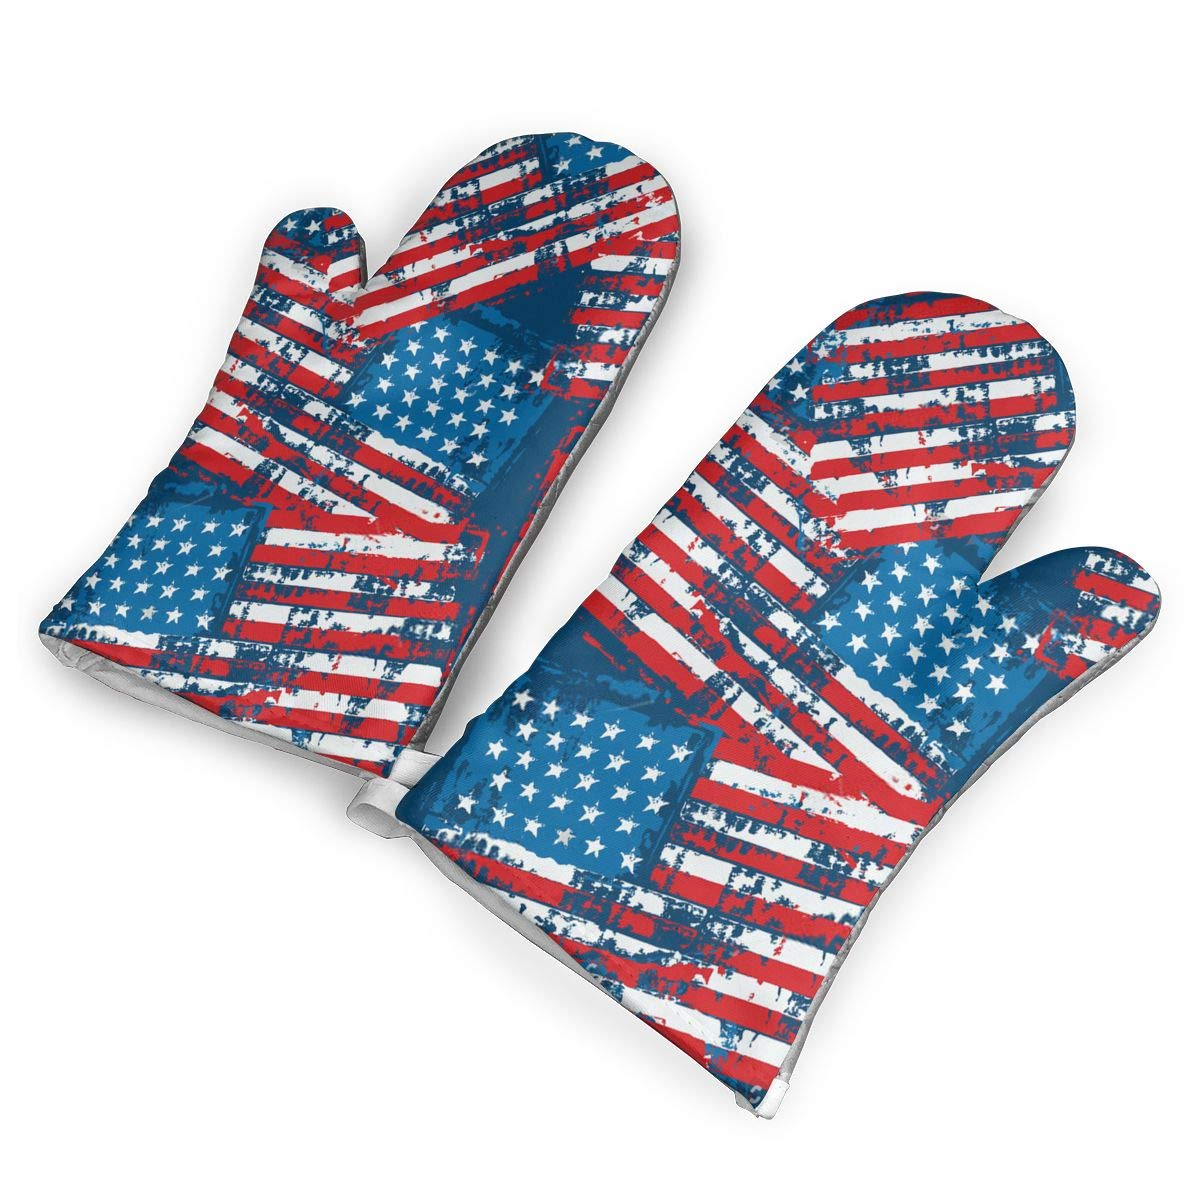 American Flag Patriotic Premium Oven Mitts, Professional Heat Resistant Microwave BBQ Oven Insulation Thickening Cotton Gloves Baking Pot Mitts with Soft Inner Lining